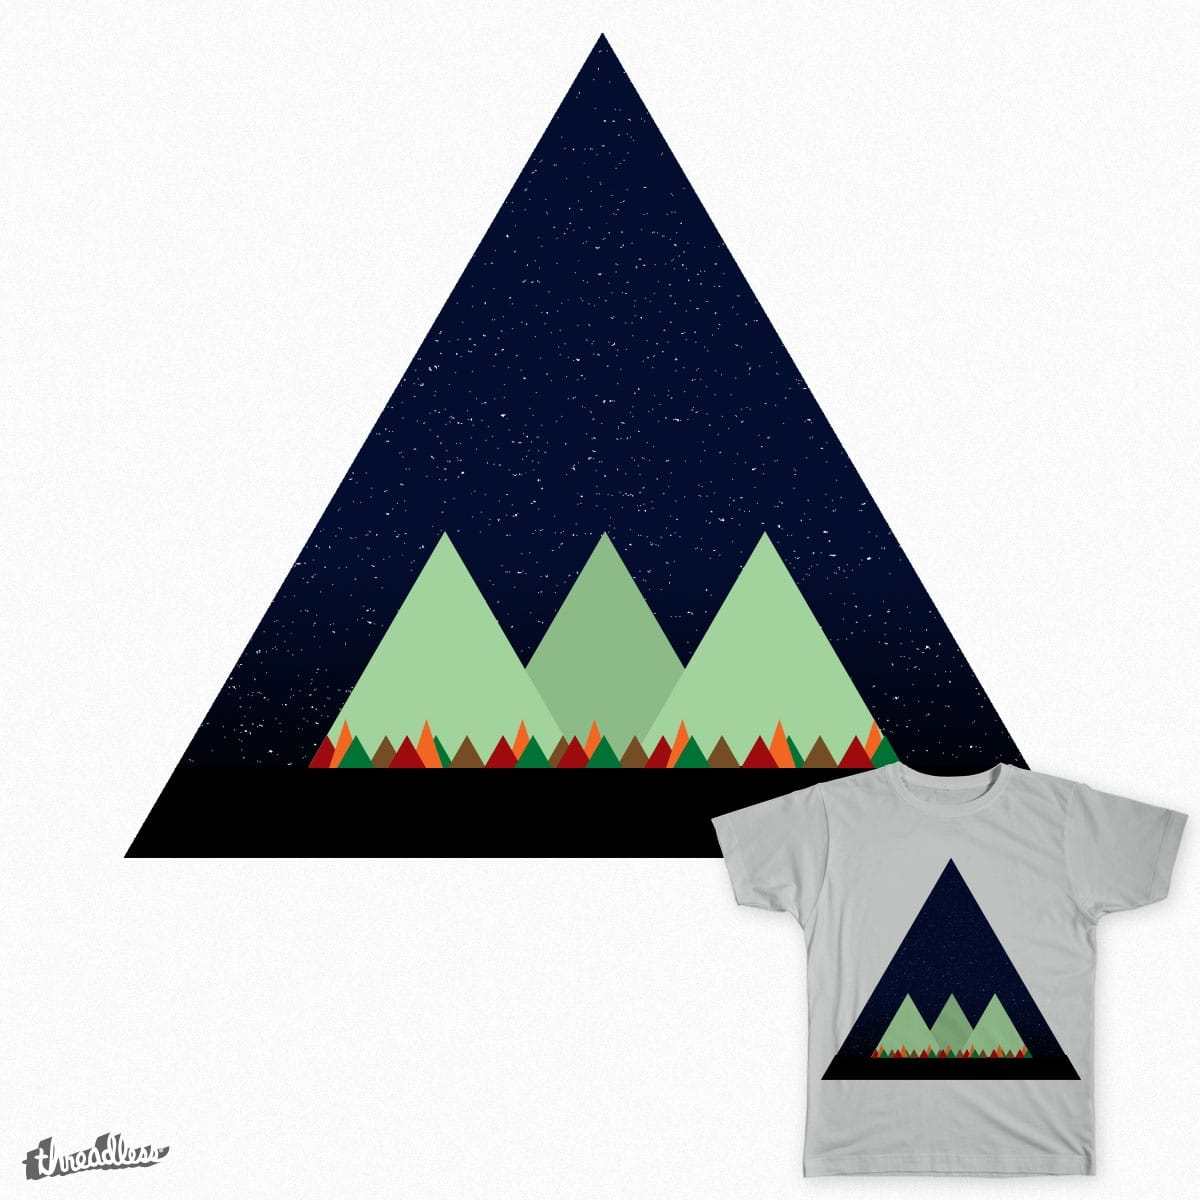 Starry Starry Night by Saree Yong on Threadless